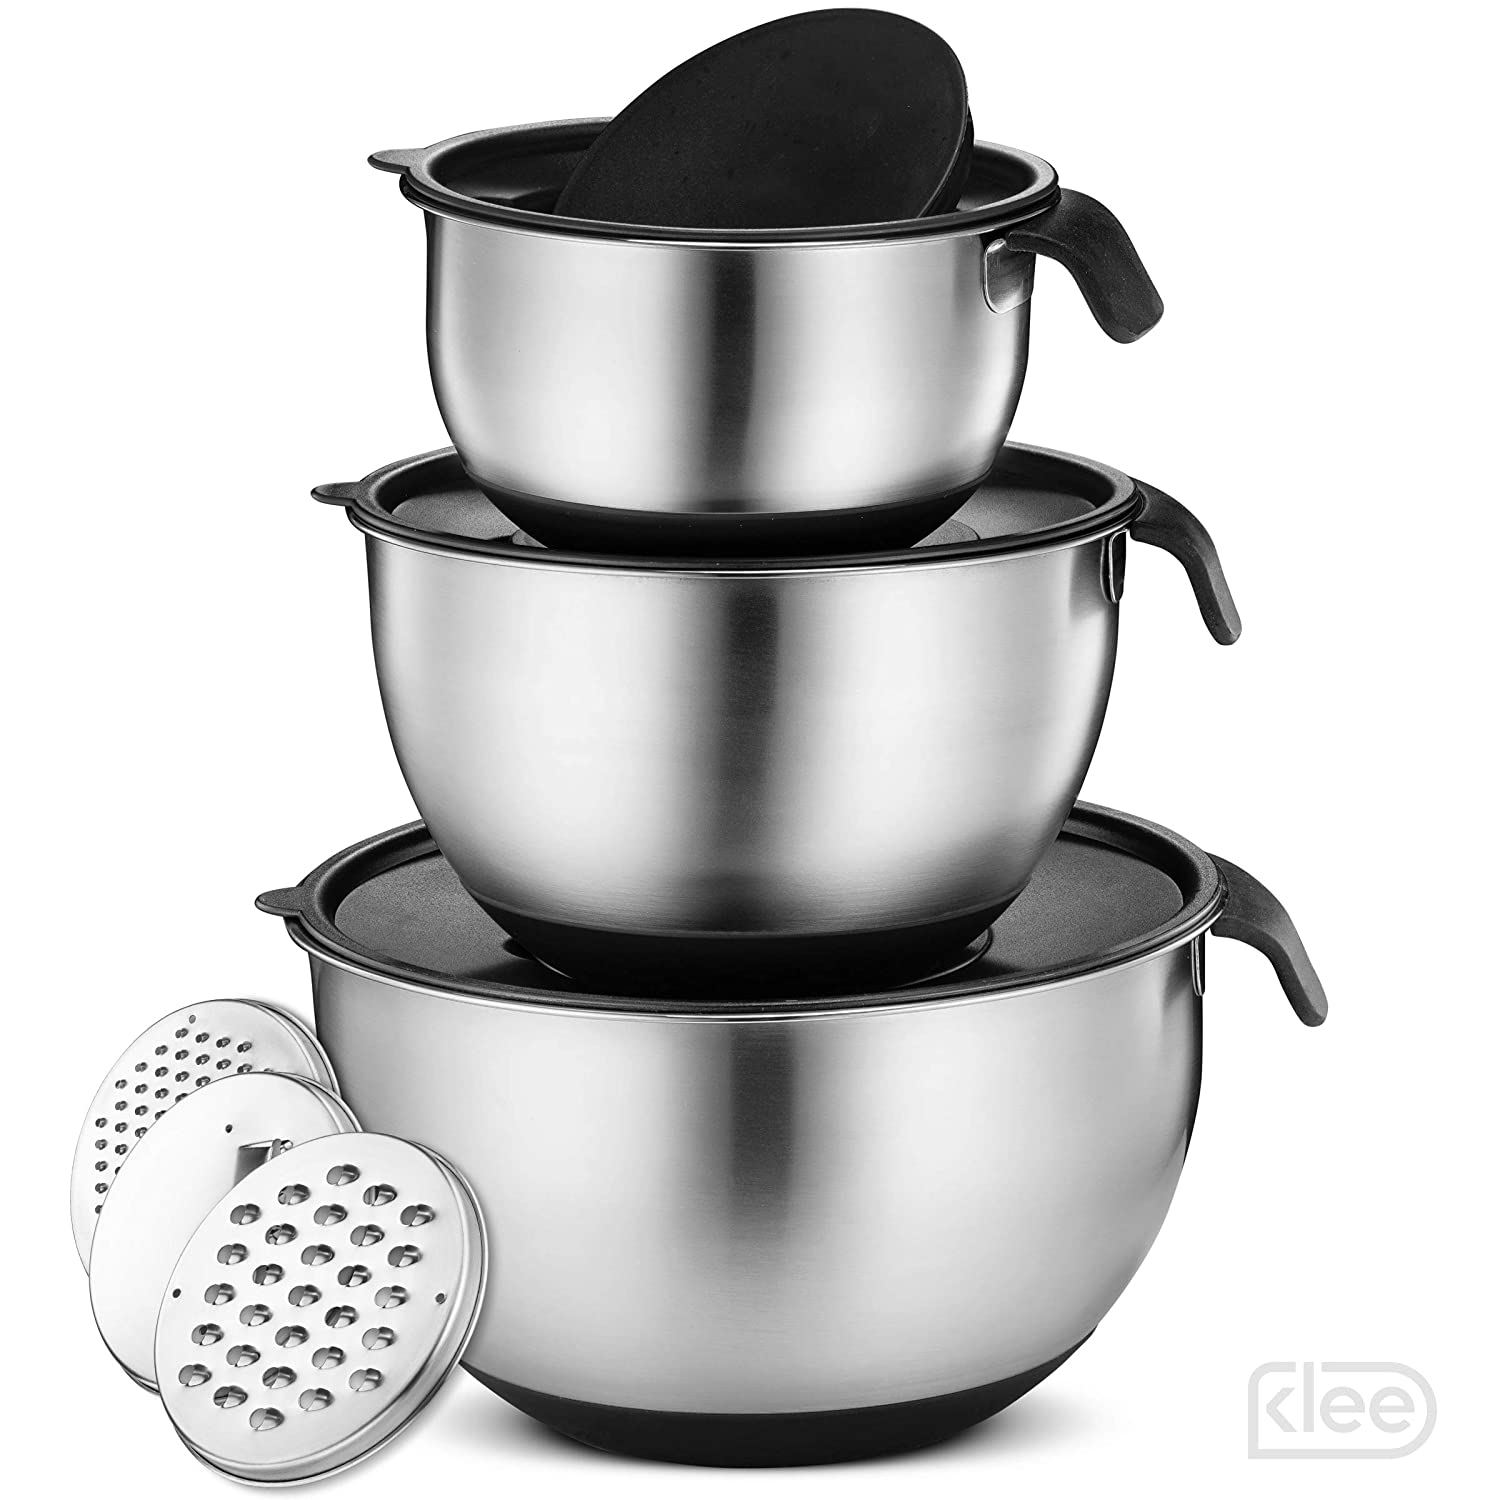 Klee Stainless Steel Mixing Bowl Set of 3 with Grater Attachments – Nesting Mixing Bowls with Handle and Pour Spout – Mixing Bowls with Airtight Lids – Non Slip Mixing Bowls with Silicone Base, Black